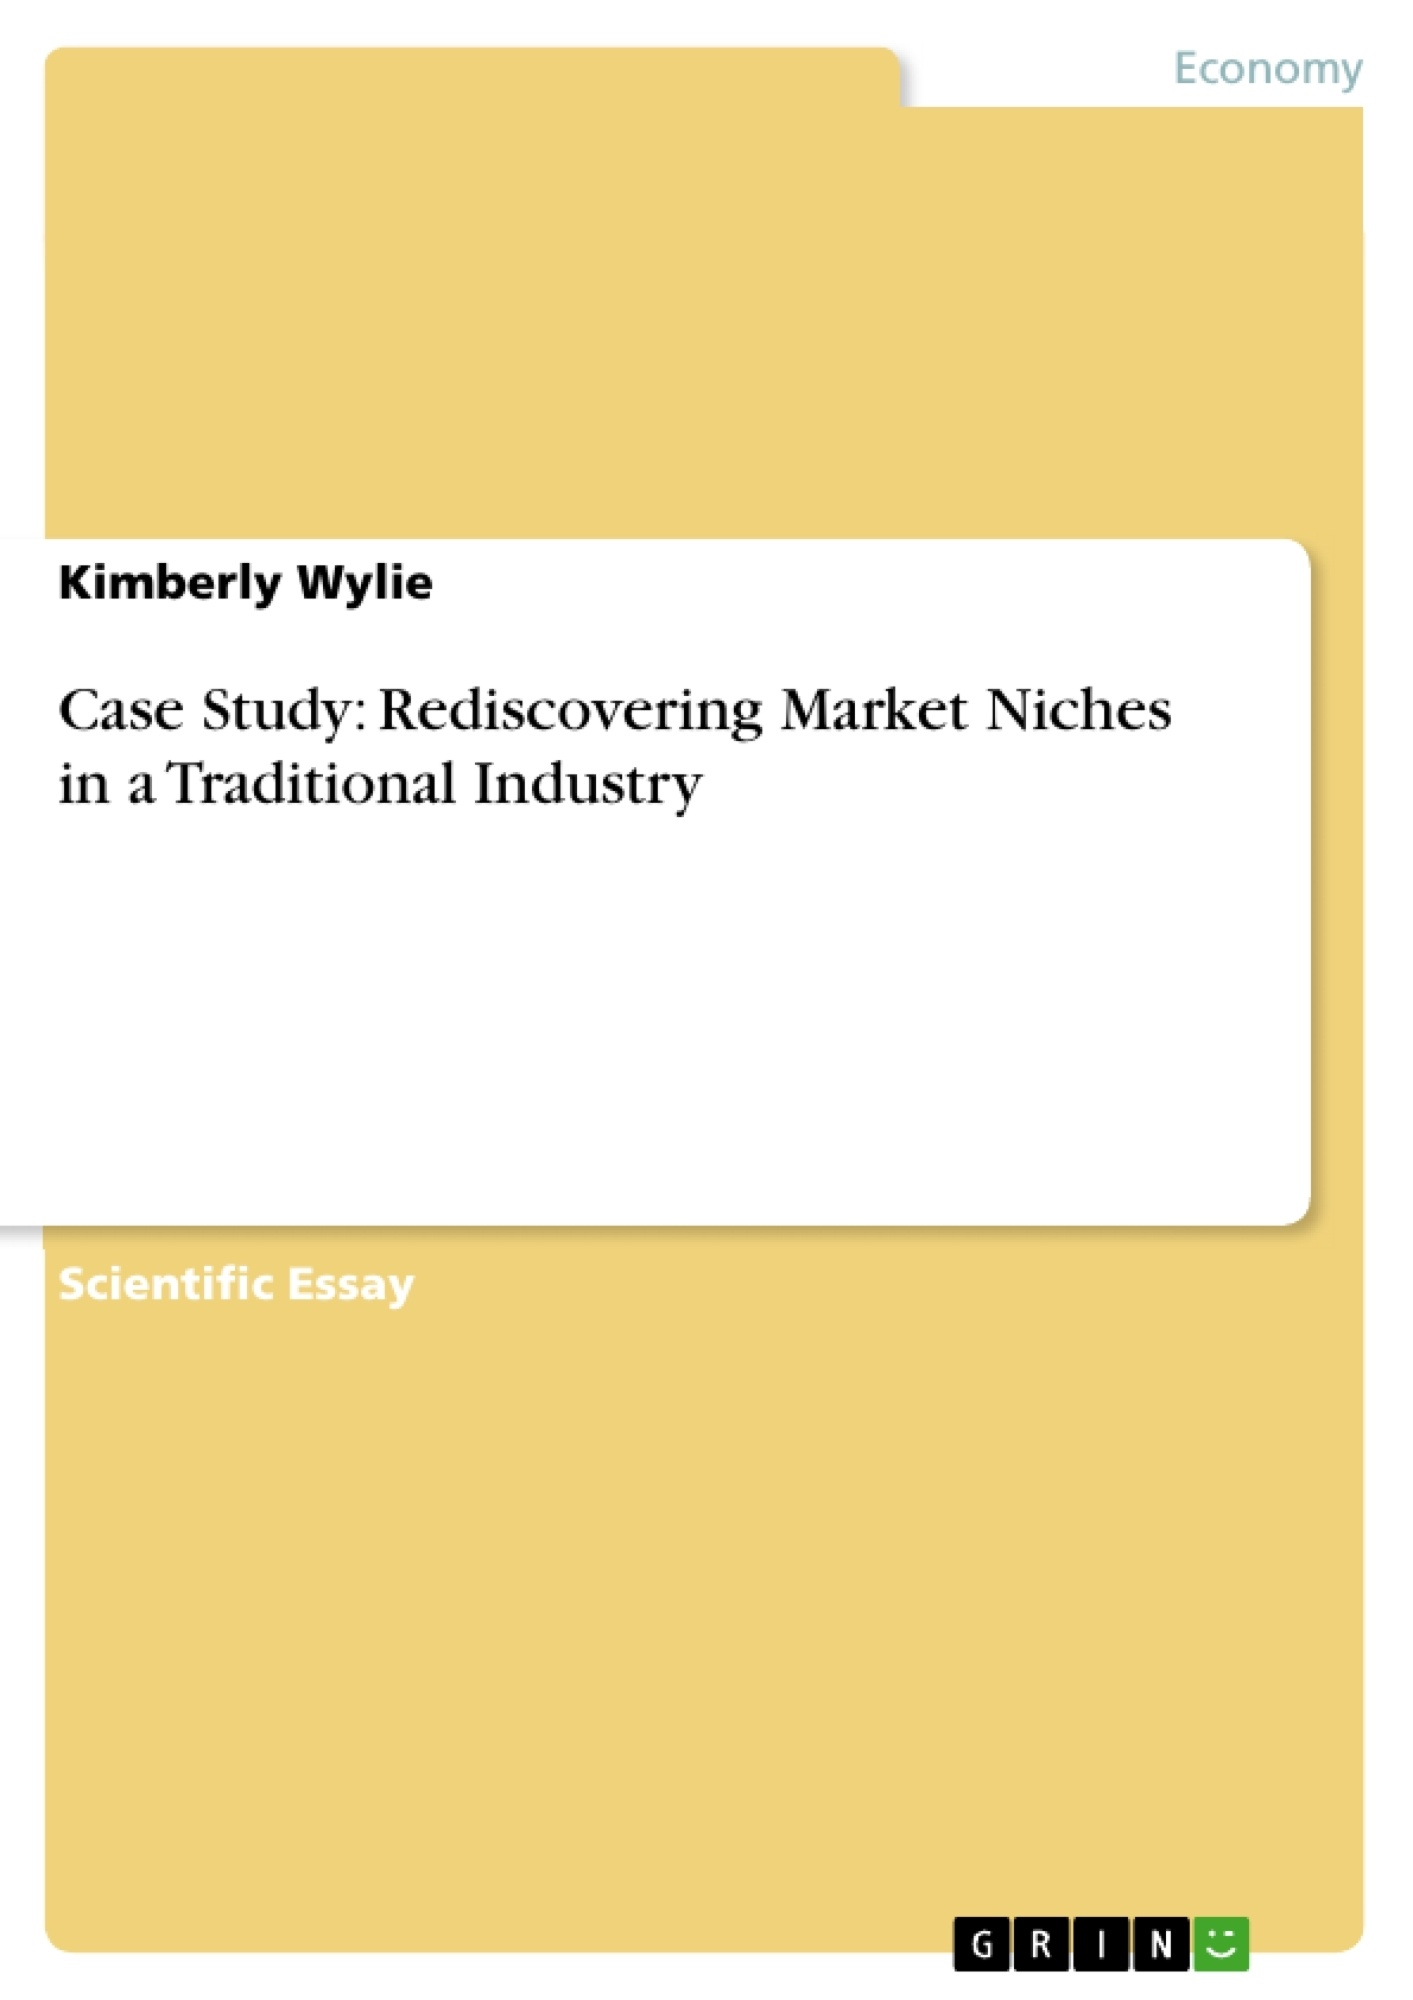 Title: Case Study: Rediscovering Market Niches in a Traditional Industry